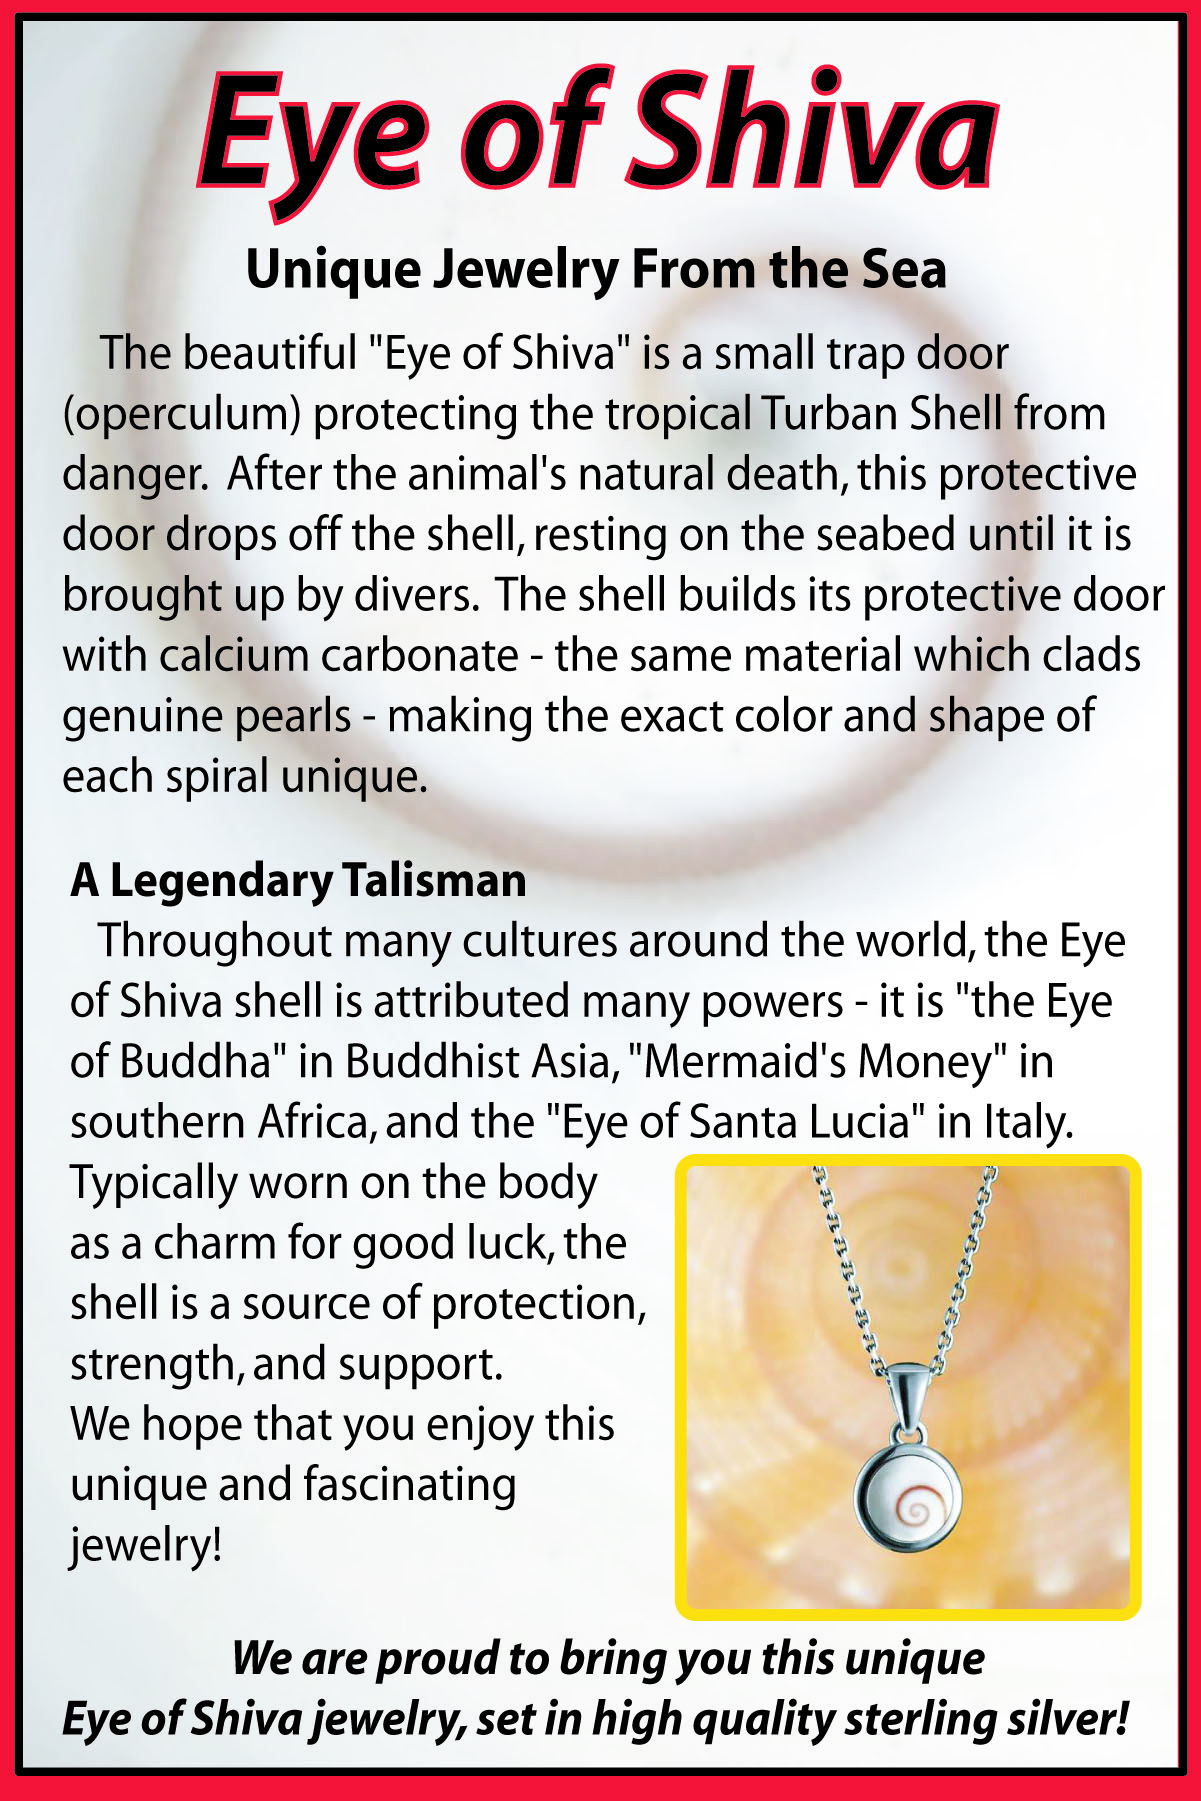 eyeofshiva-side1-copy.jpg